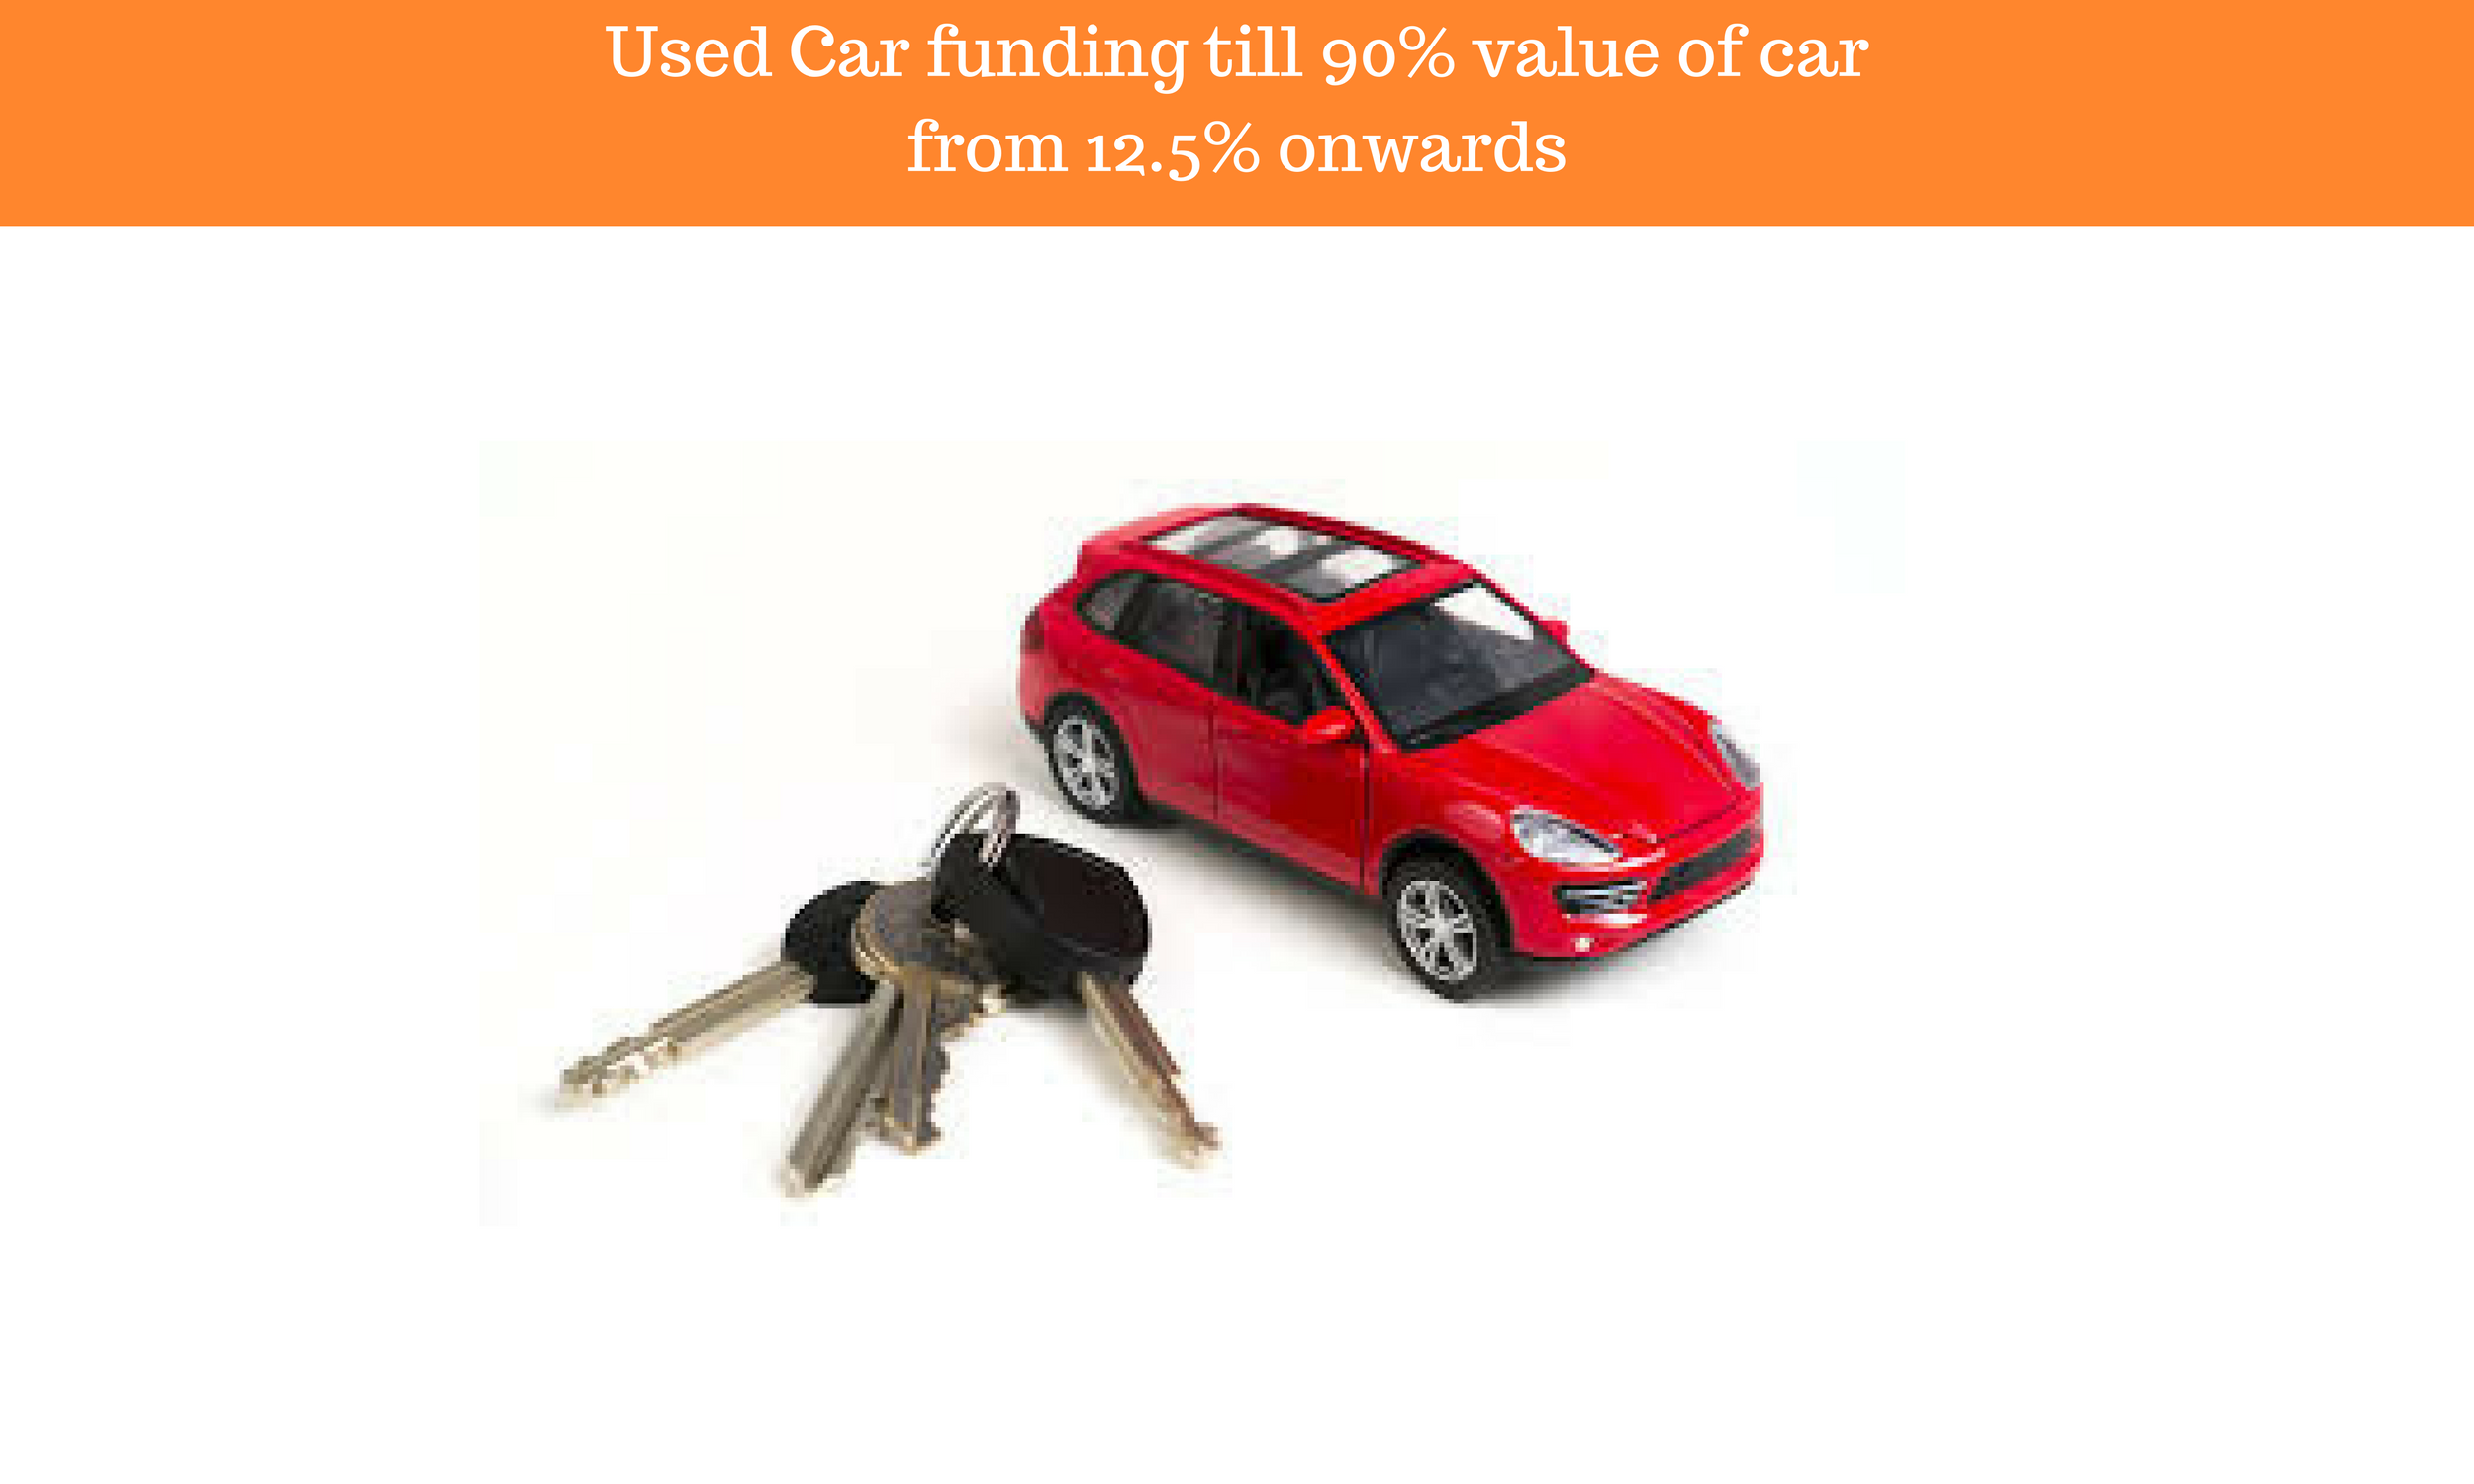 used car funding till 90 value of car from 12 5 onwards